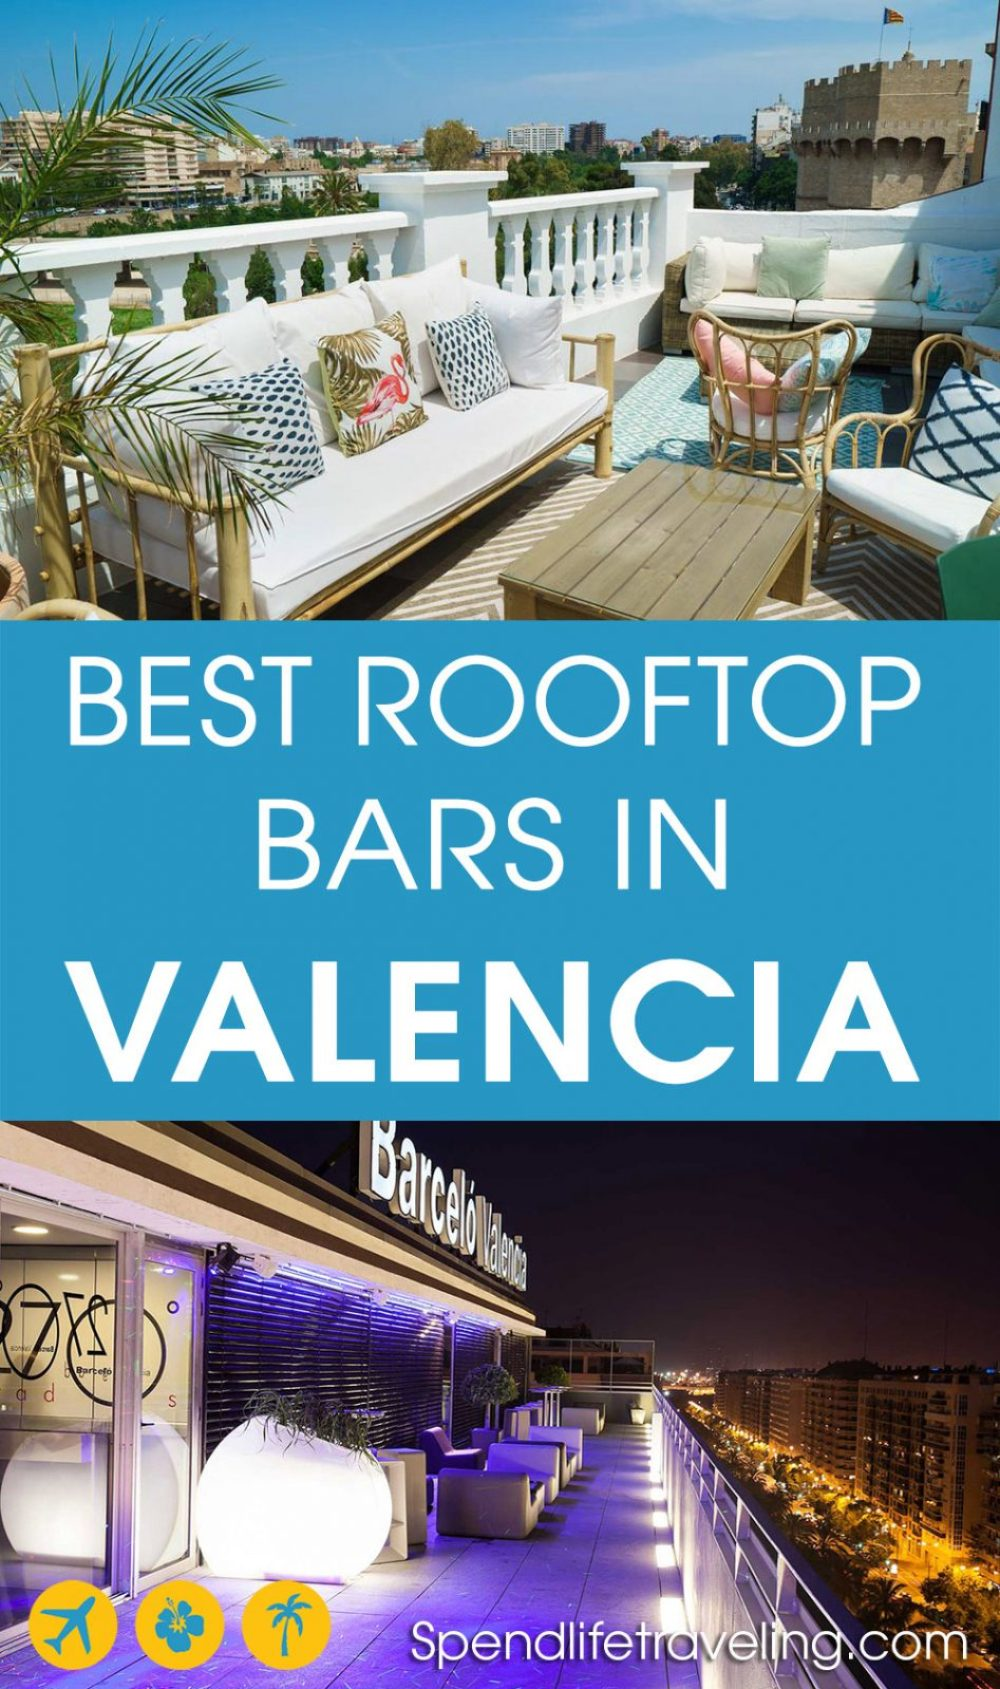 #Valencia with its great weather and historical buildings is a perfect place for rooftop bars. Check out this list of the best rooftop bars in Valencia. Map included. #rooftopbars #visitSpain #IloveValencia #traveltips #bestcity #travelEurope